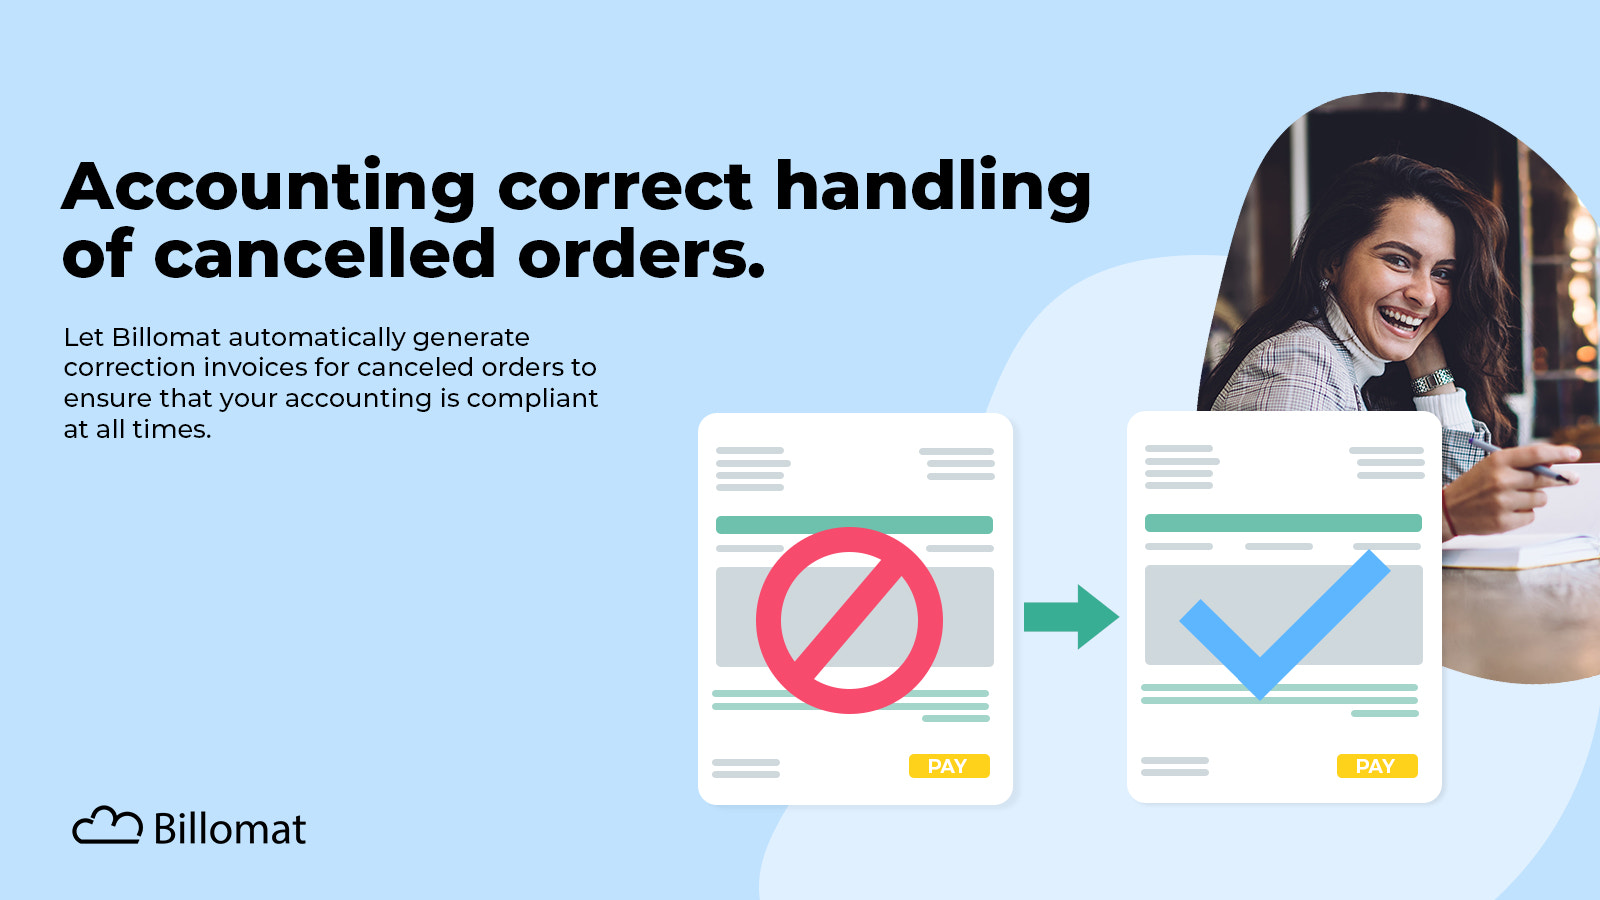 Correct processing of cancelled orders